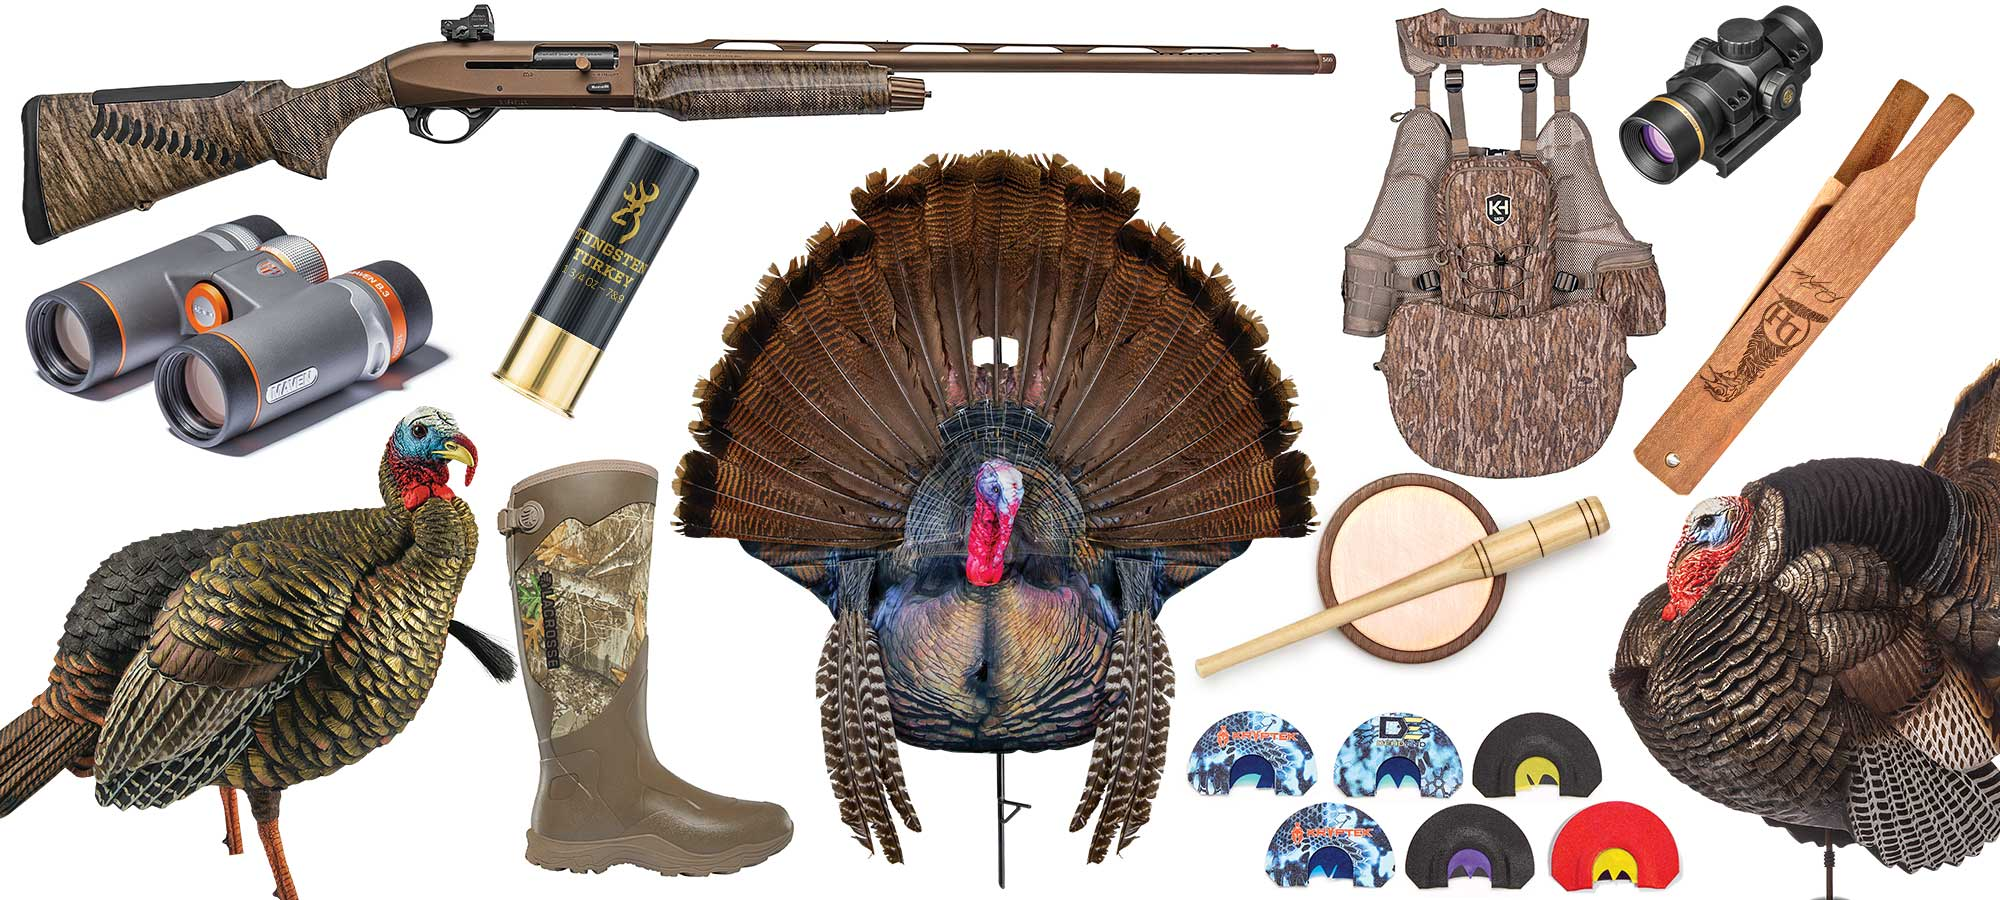 The Best New Turkey Hunting Gear Guide for 2019